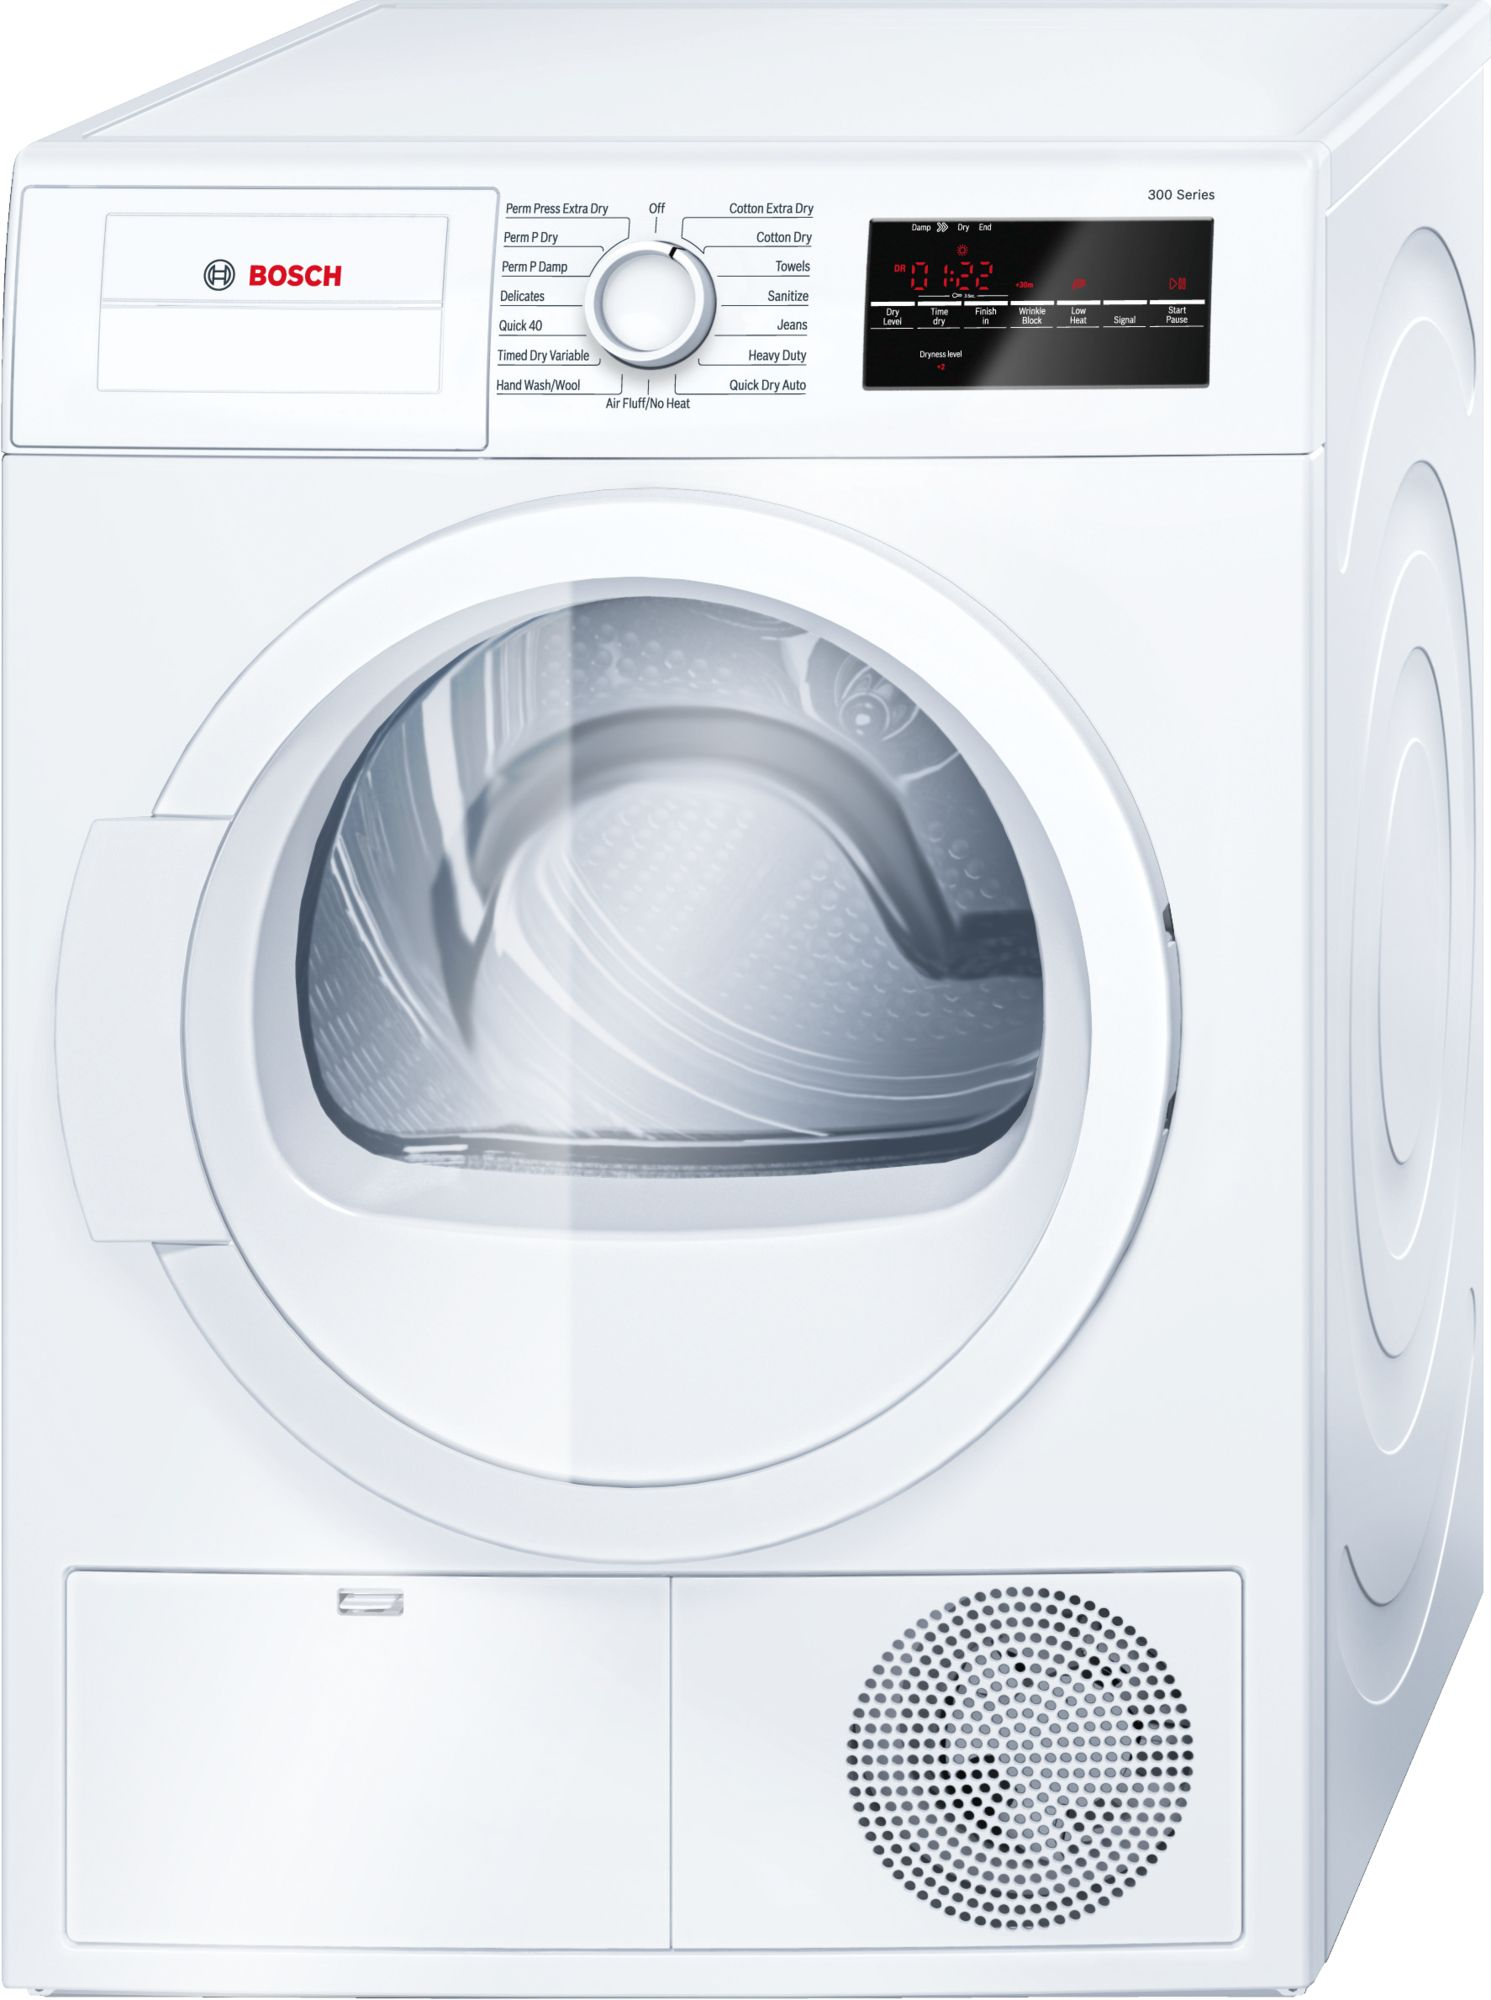 Electric dryer bosch 300 series front load electric dryer white wtg86400uc sciox Choice Image